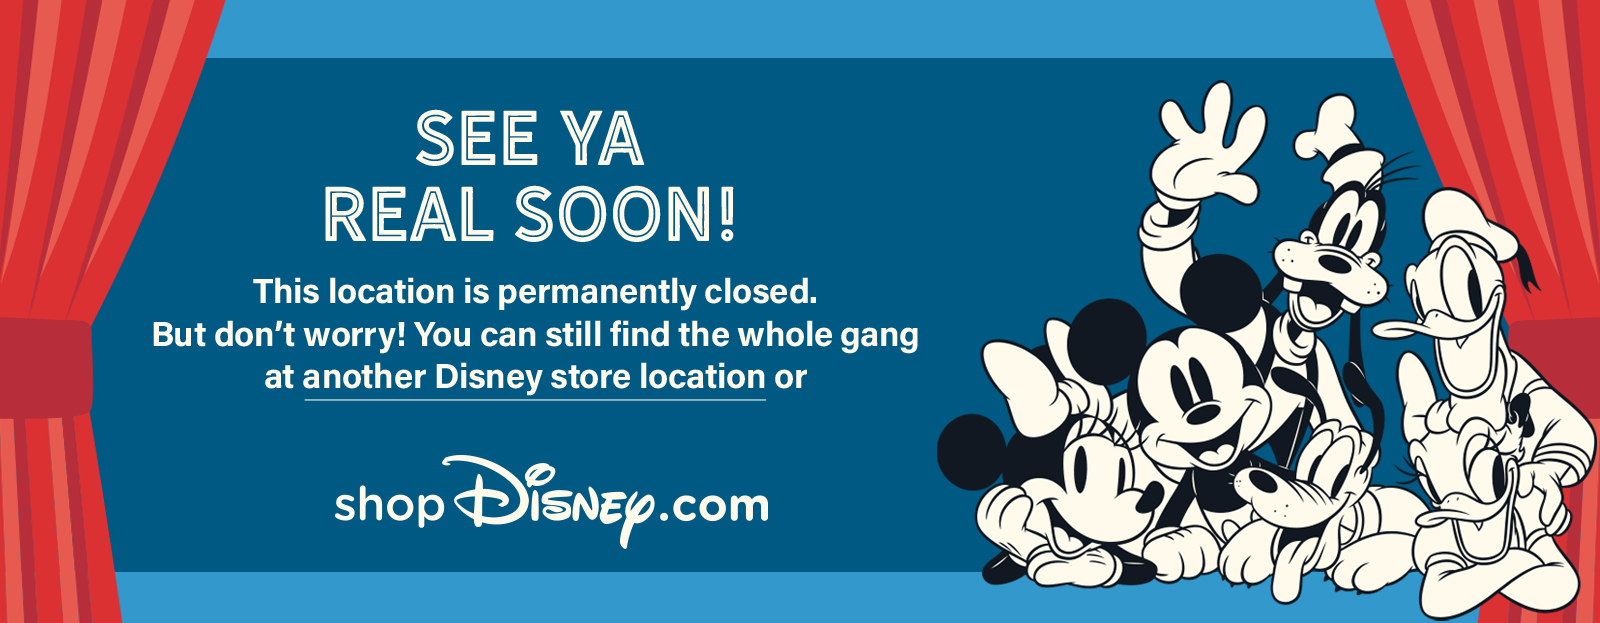 This location is permanently closed. But don't worry! You can still find the whole gang at another Disney store location or shopdisney.com